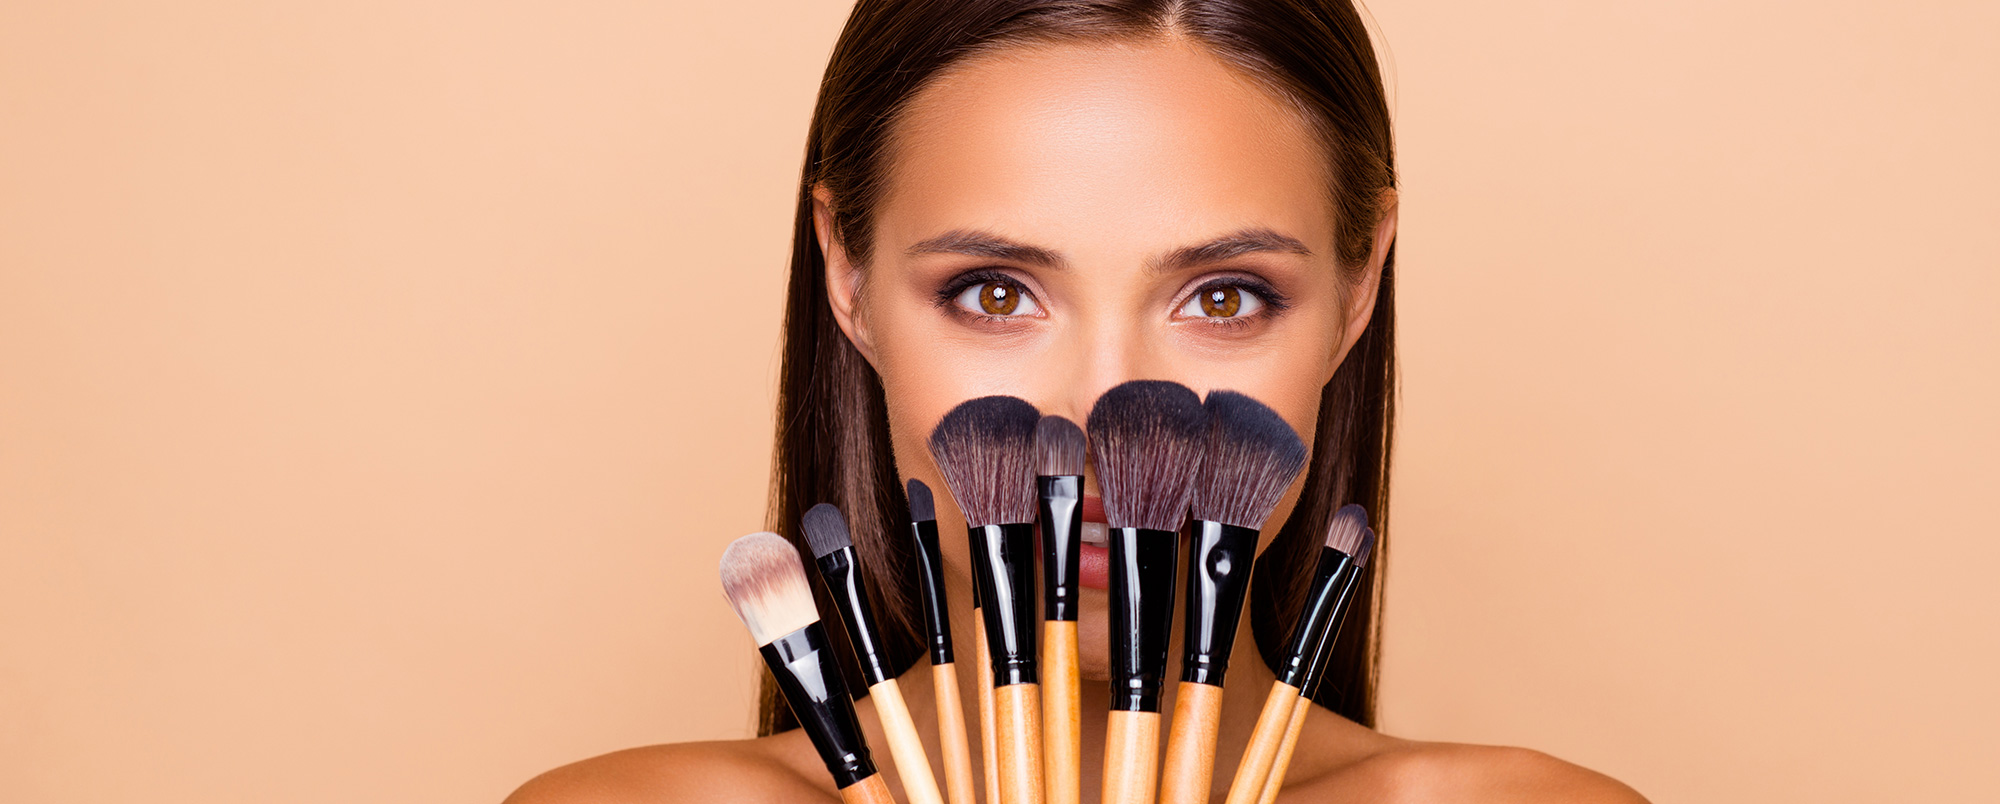 Cosmetics are used to improve the appearance